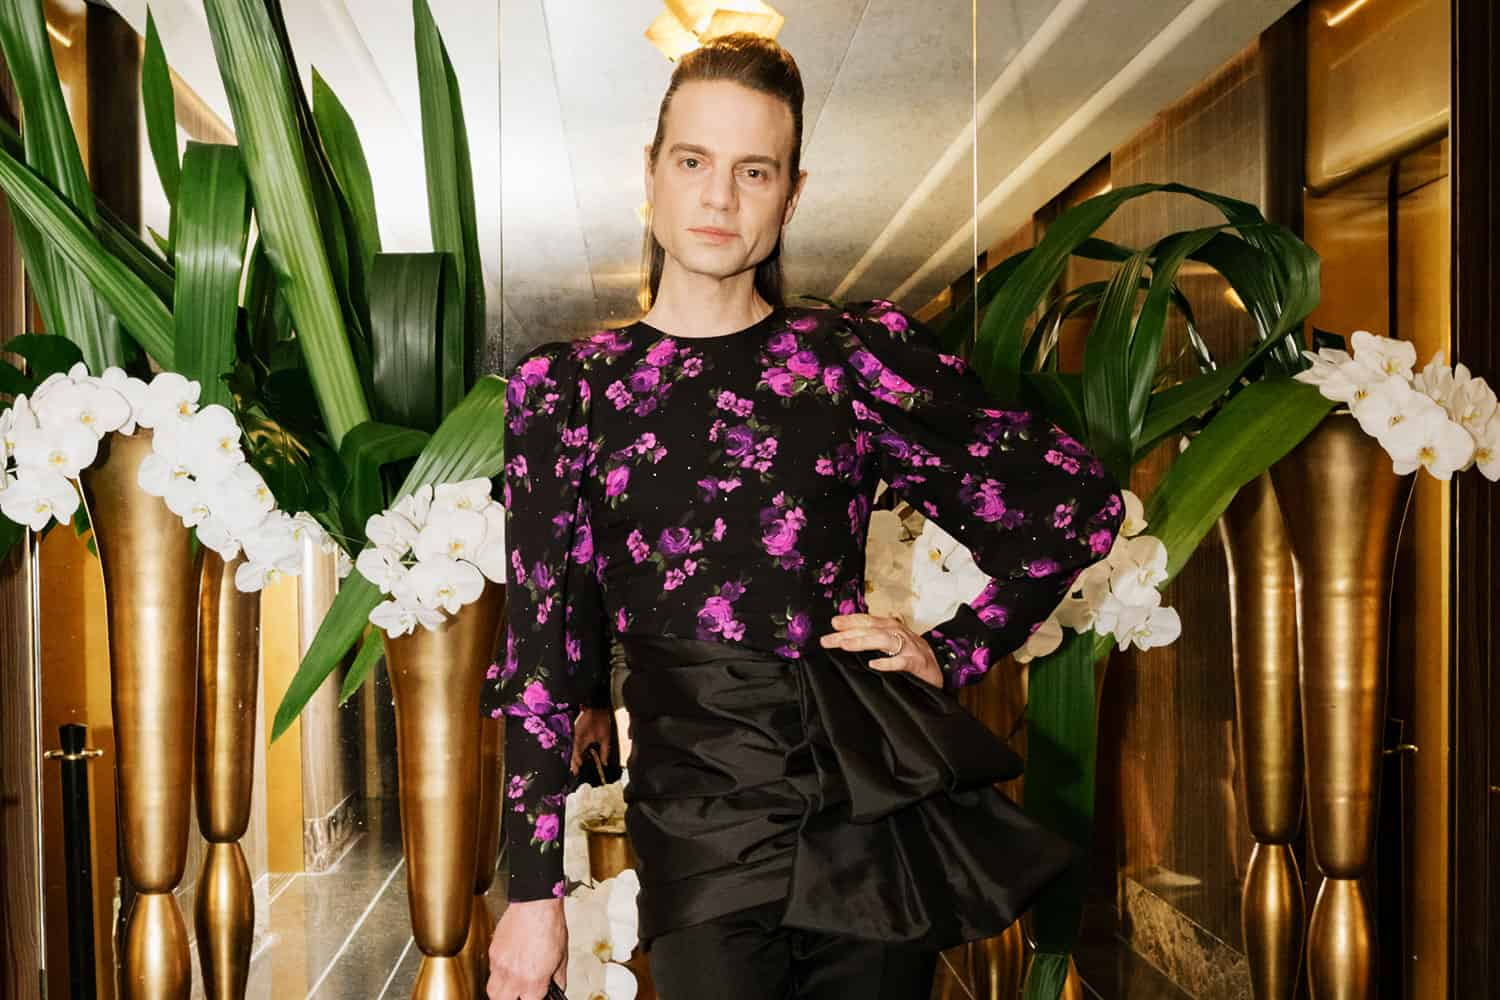 Jordan Roth on Extraordinary Selfness and the Excavation of Identity Through Fashion